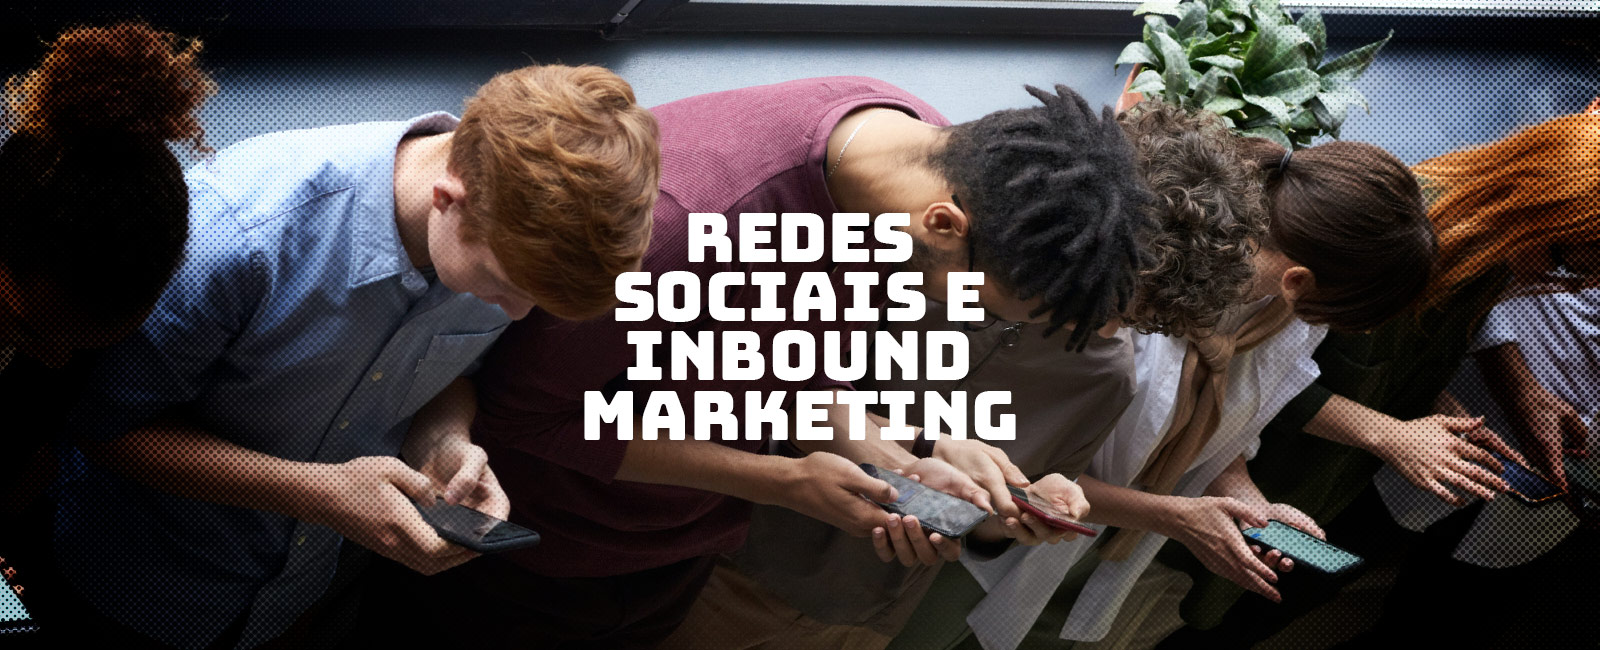 redes sociais e inbound marketing